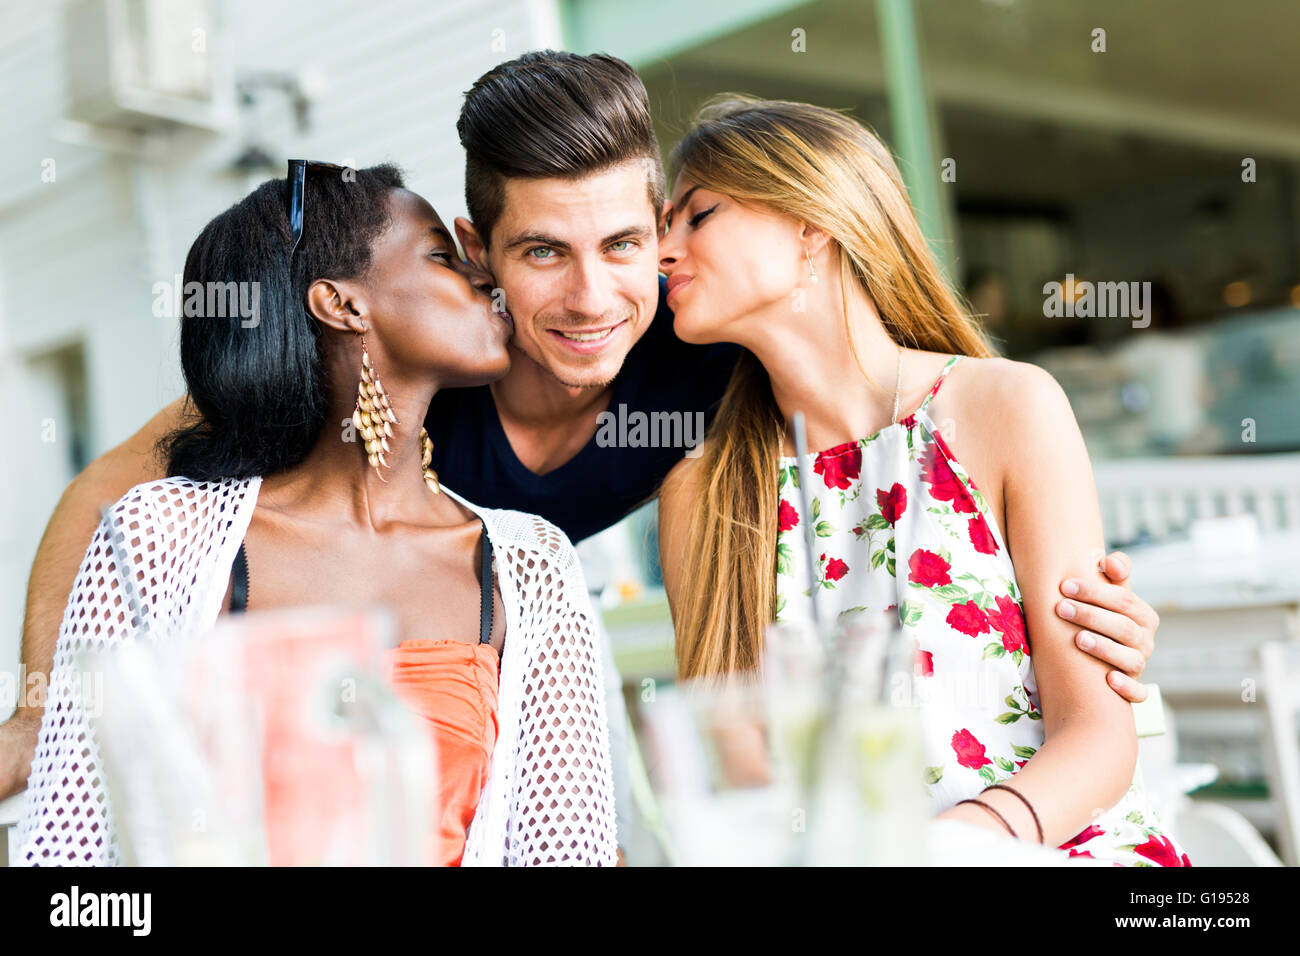 Happy young friends smiling outdoors being close to each other on a summer day Stock Photo